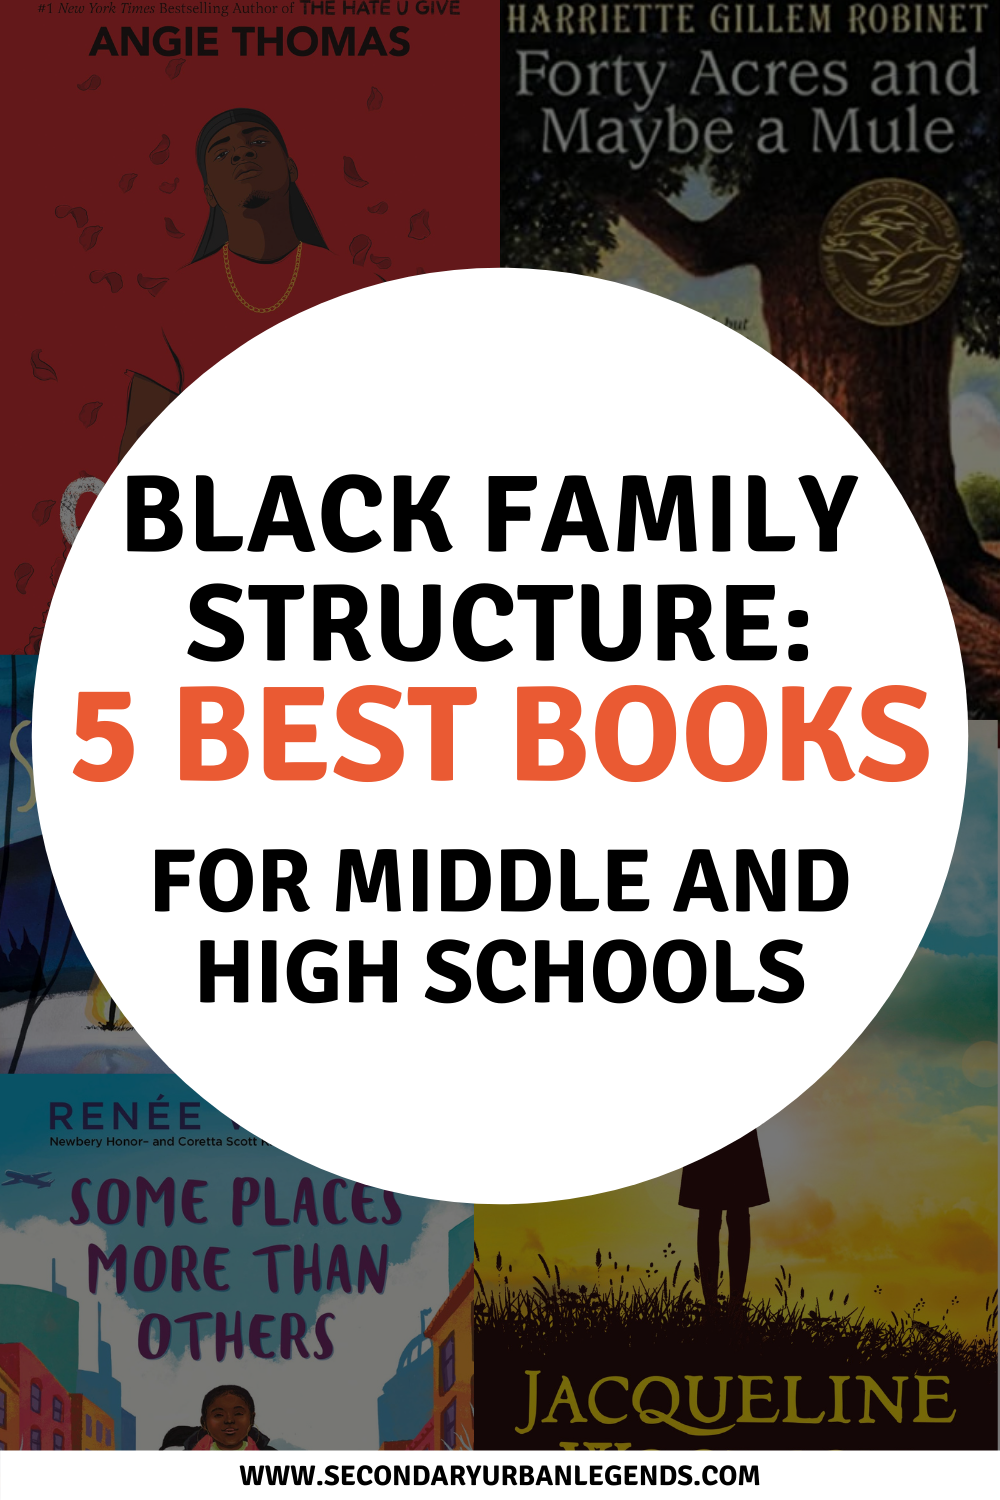 The black family structure and cultural diversity has long been a matter of interest and discus for so many. There are many questions and doubts around the black family structure.